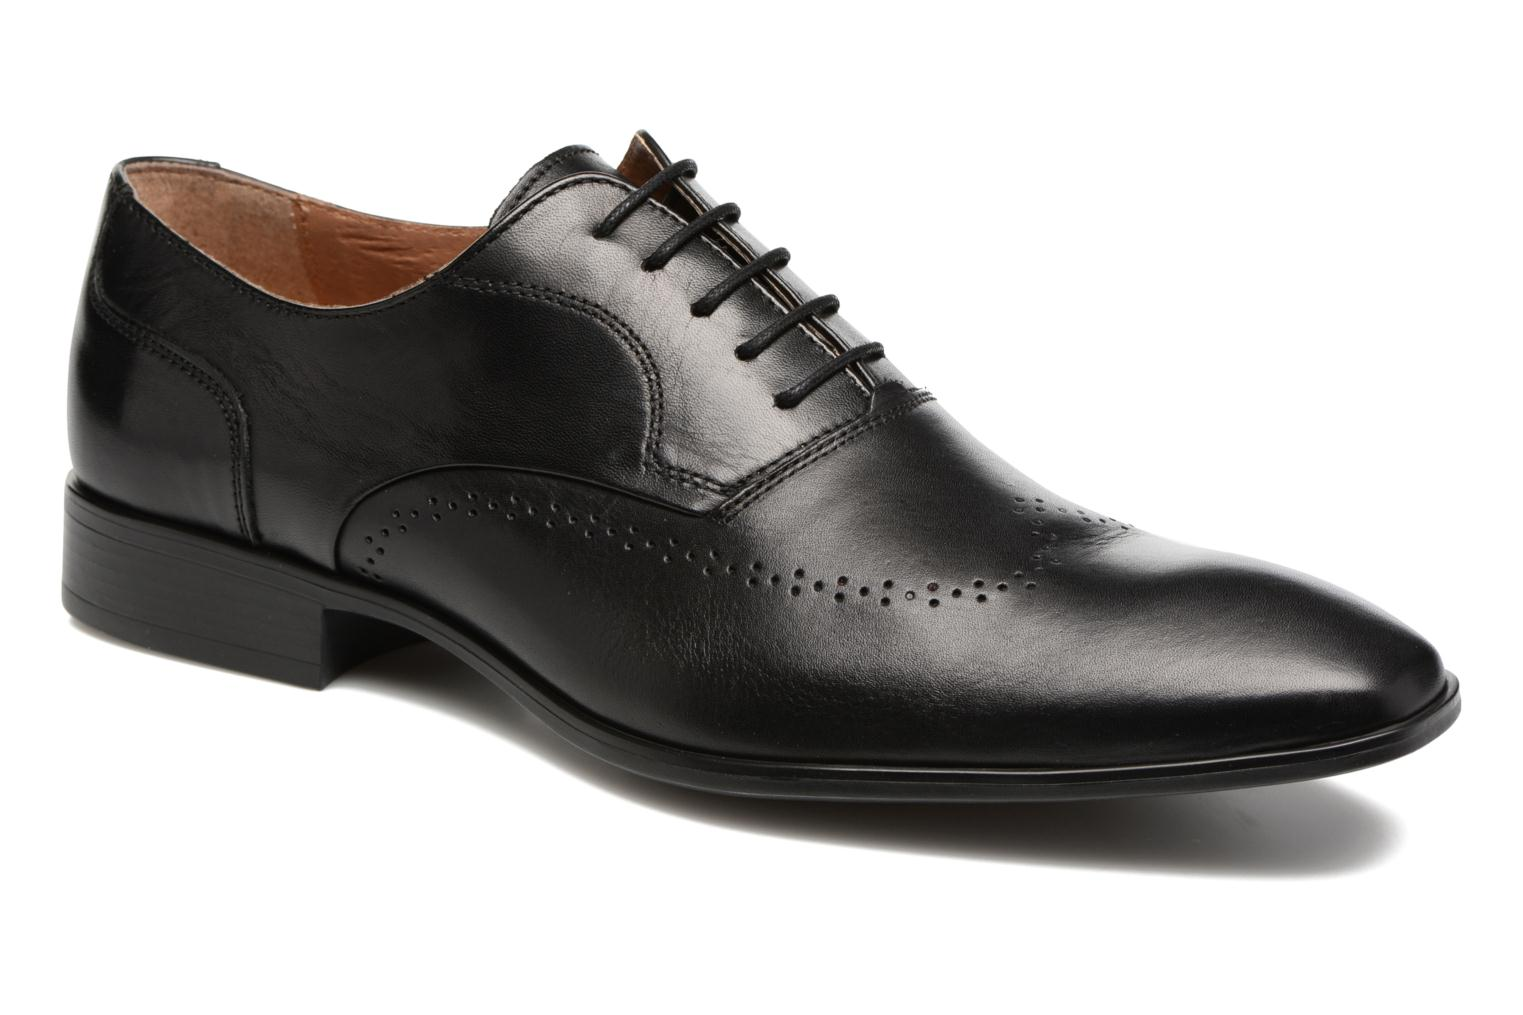 Marques Chaussure homme Marvin&Co homme Romford 7490